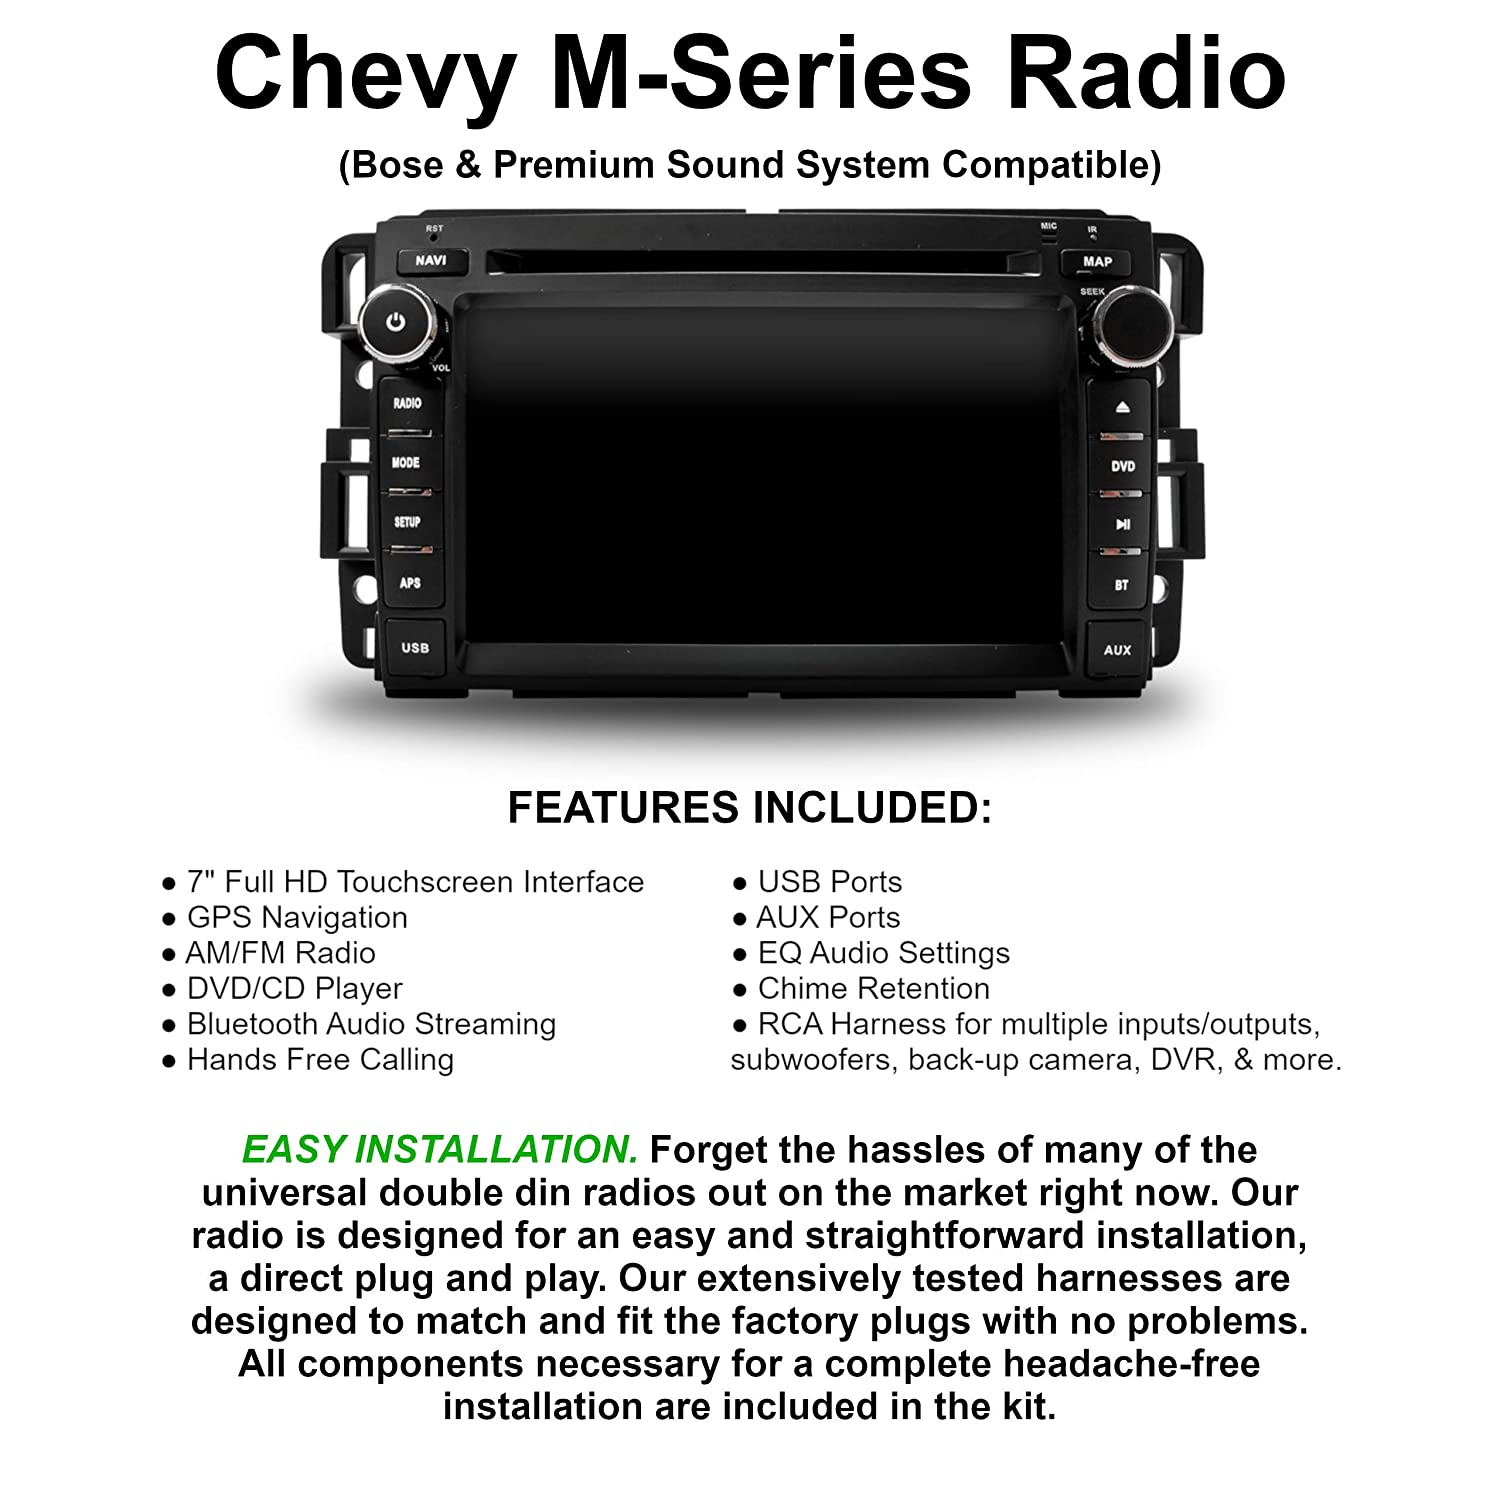 2013 Chevy Silverado Radio Diagram Wiring Diagram Share The